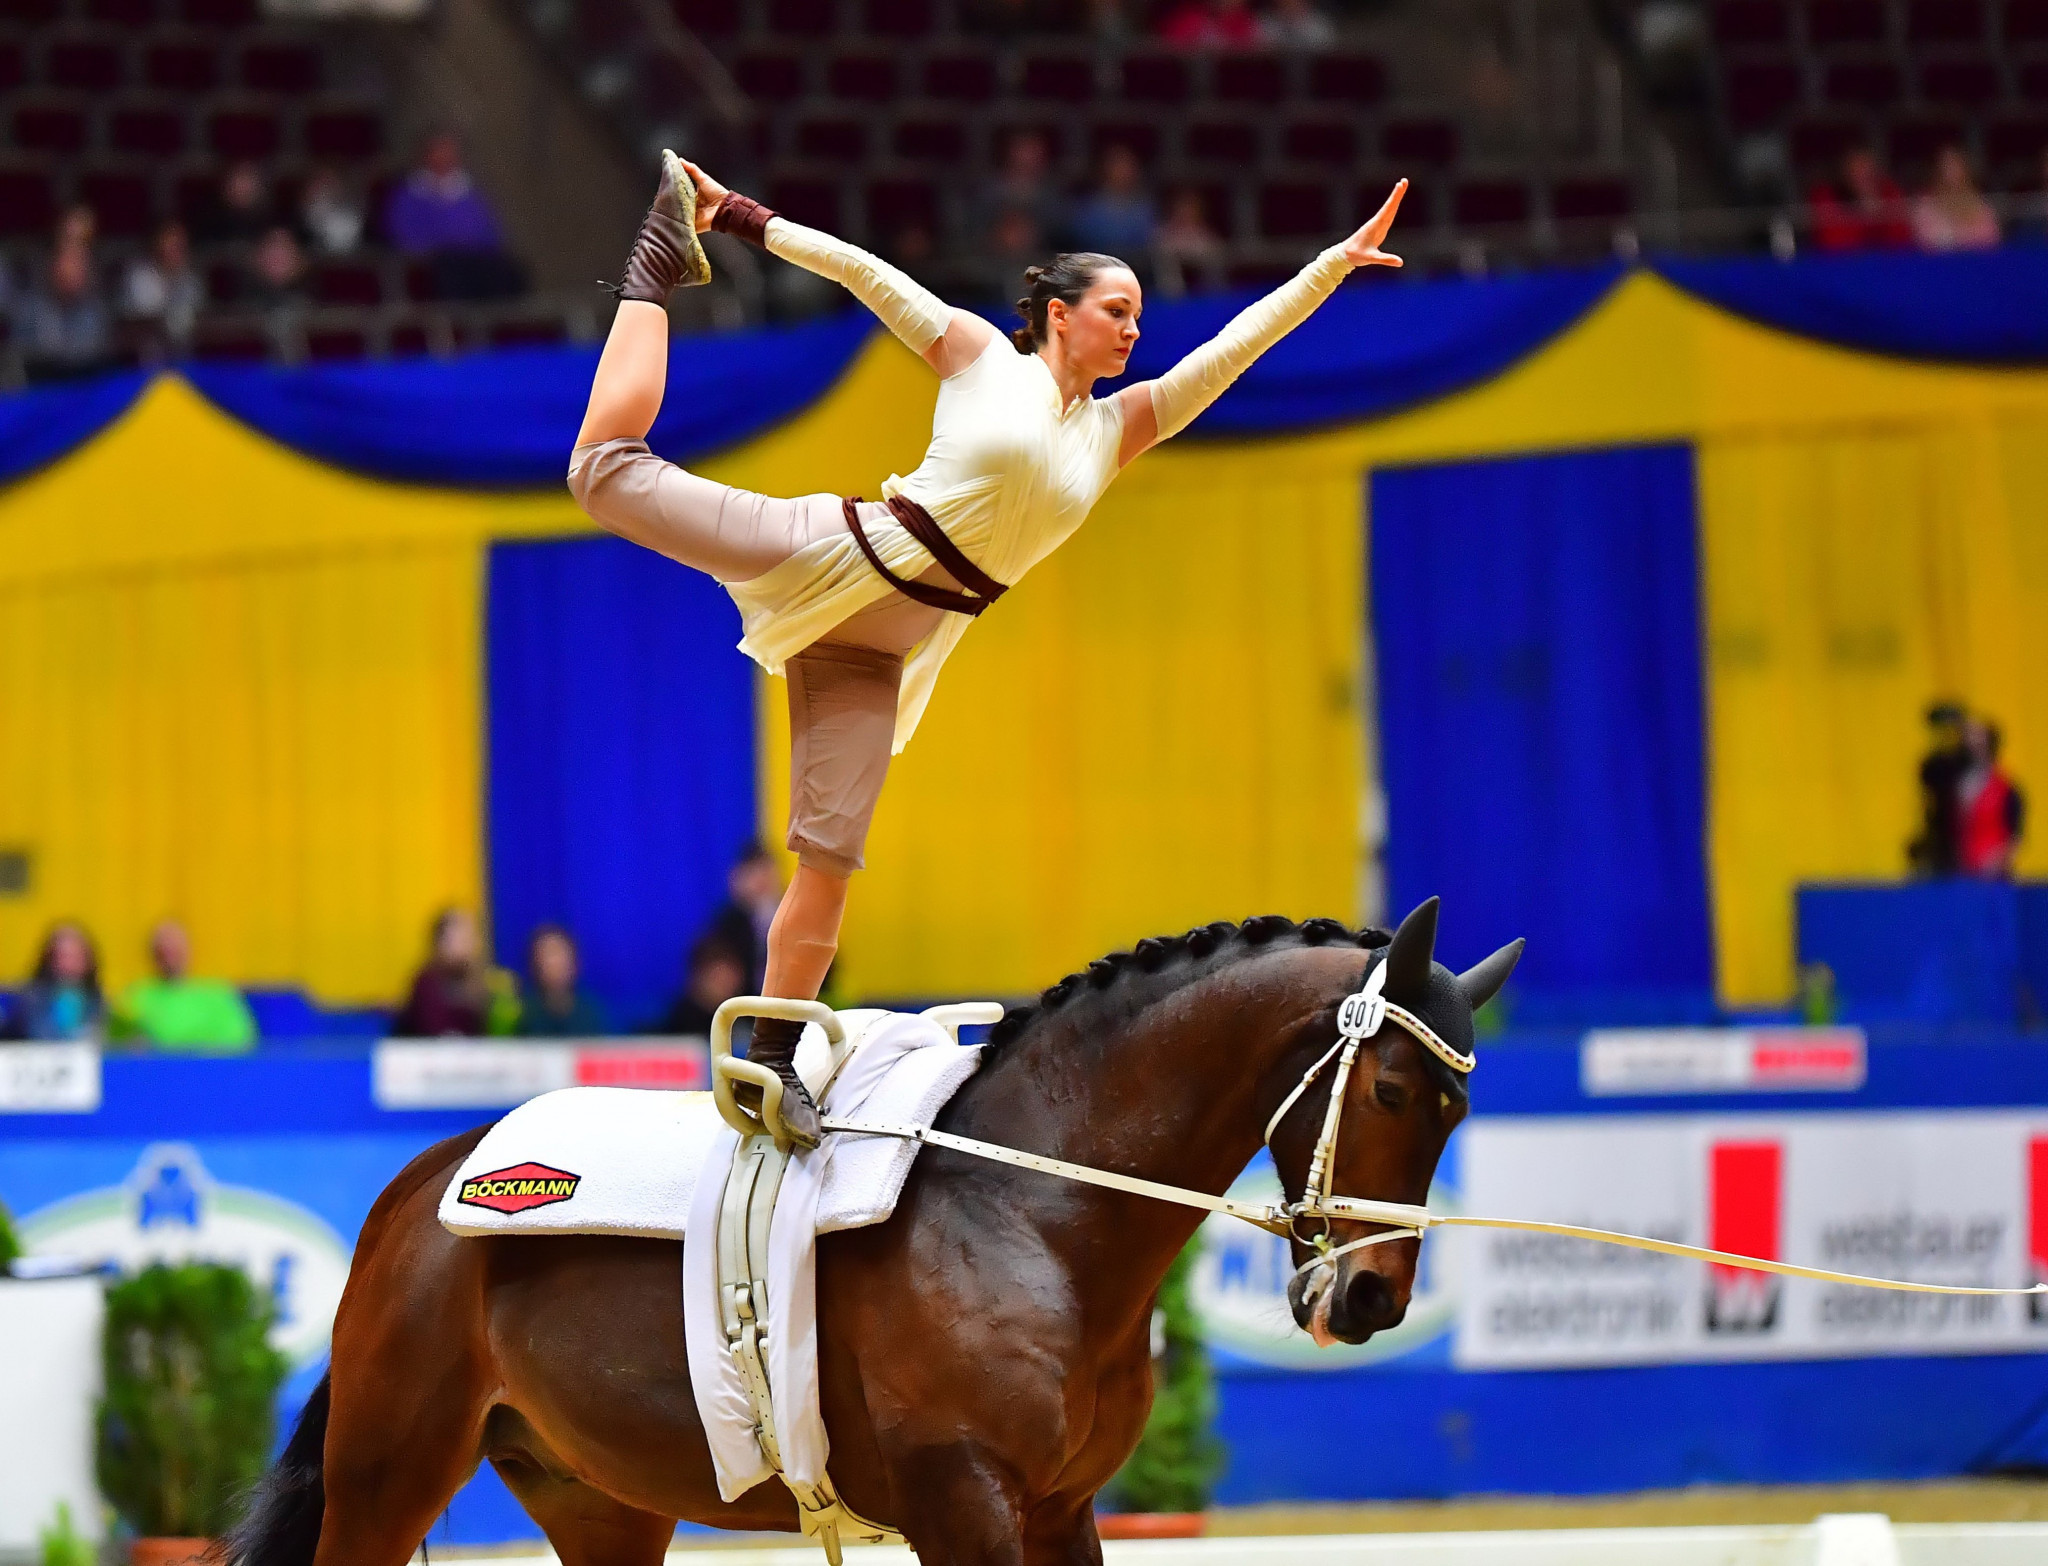 Kristina Boe secured her first FEI World Cup Vaulting title in Dortmund ©FEI/Daniel Kaiser